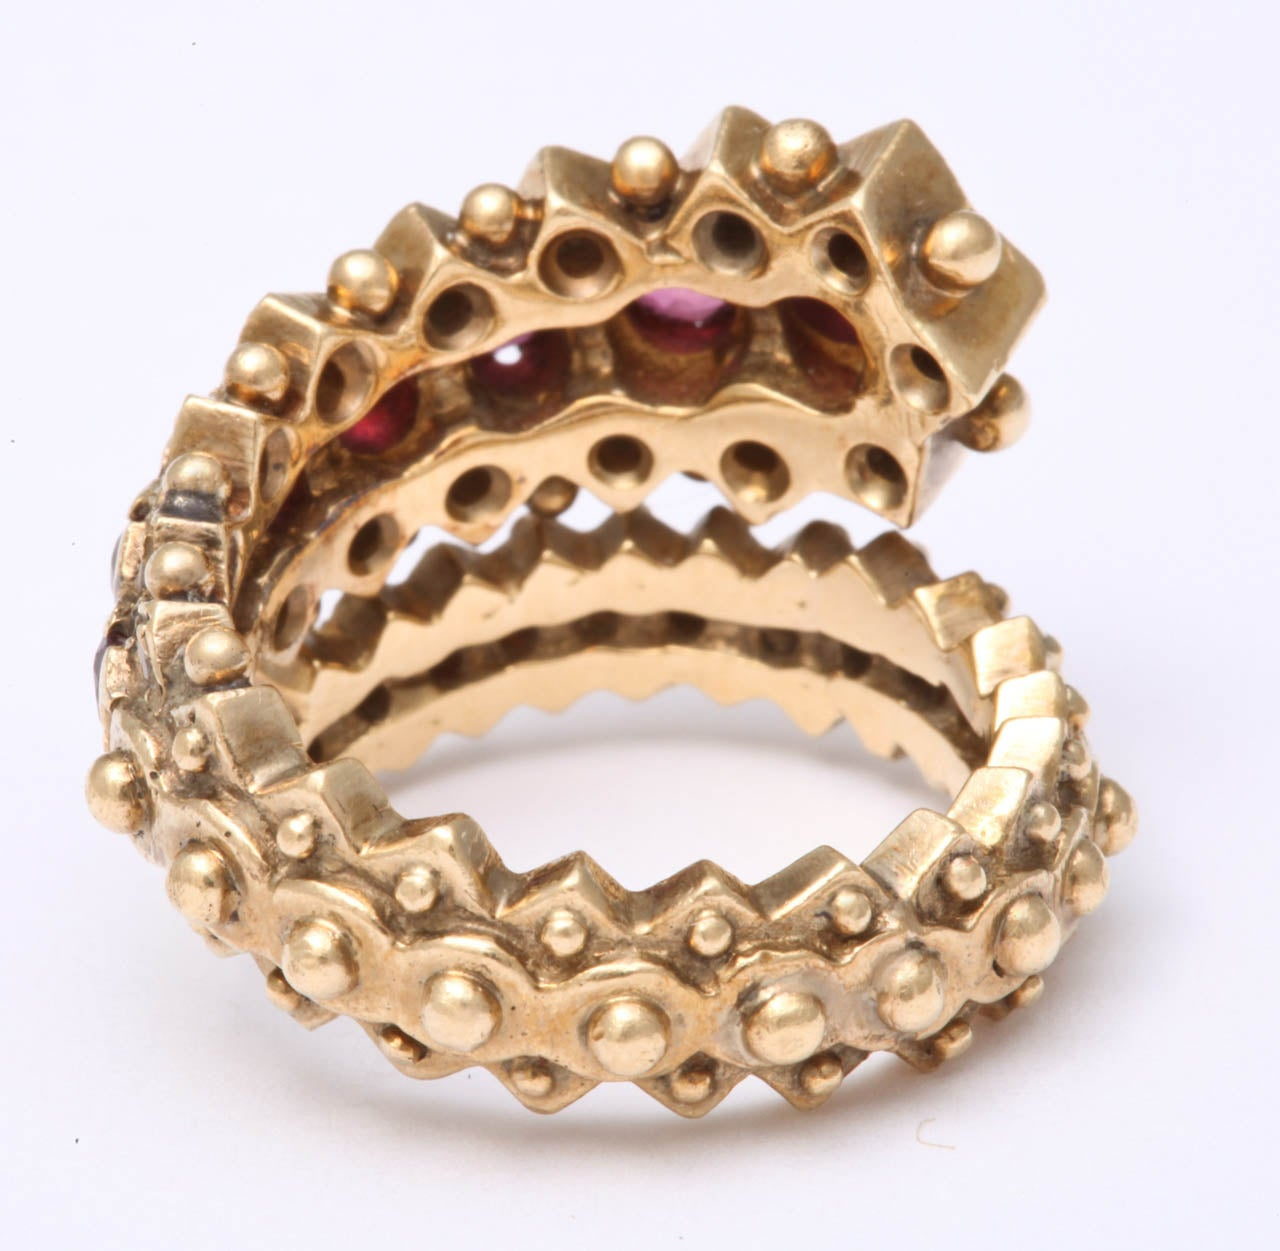 bolt clasp fitting 26mm round 1.5mm wire ring bracelet 7.5-8.5 inch